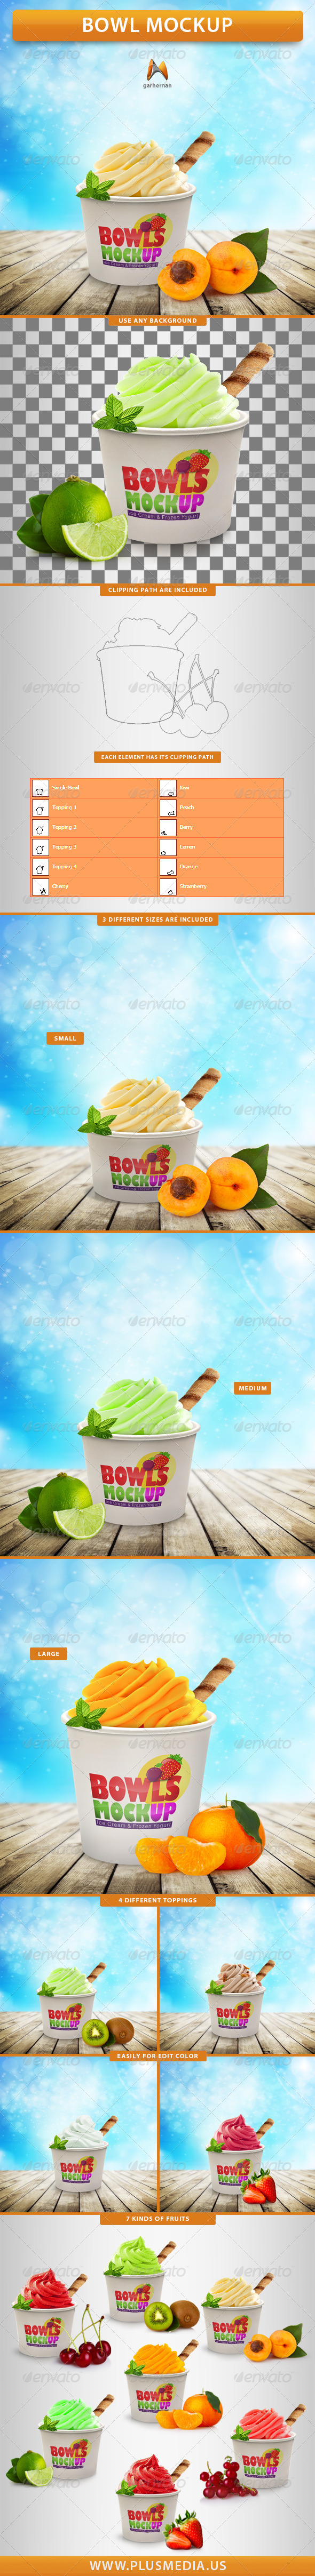 GraphicRiver Bowl Mockup 8746986